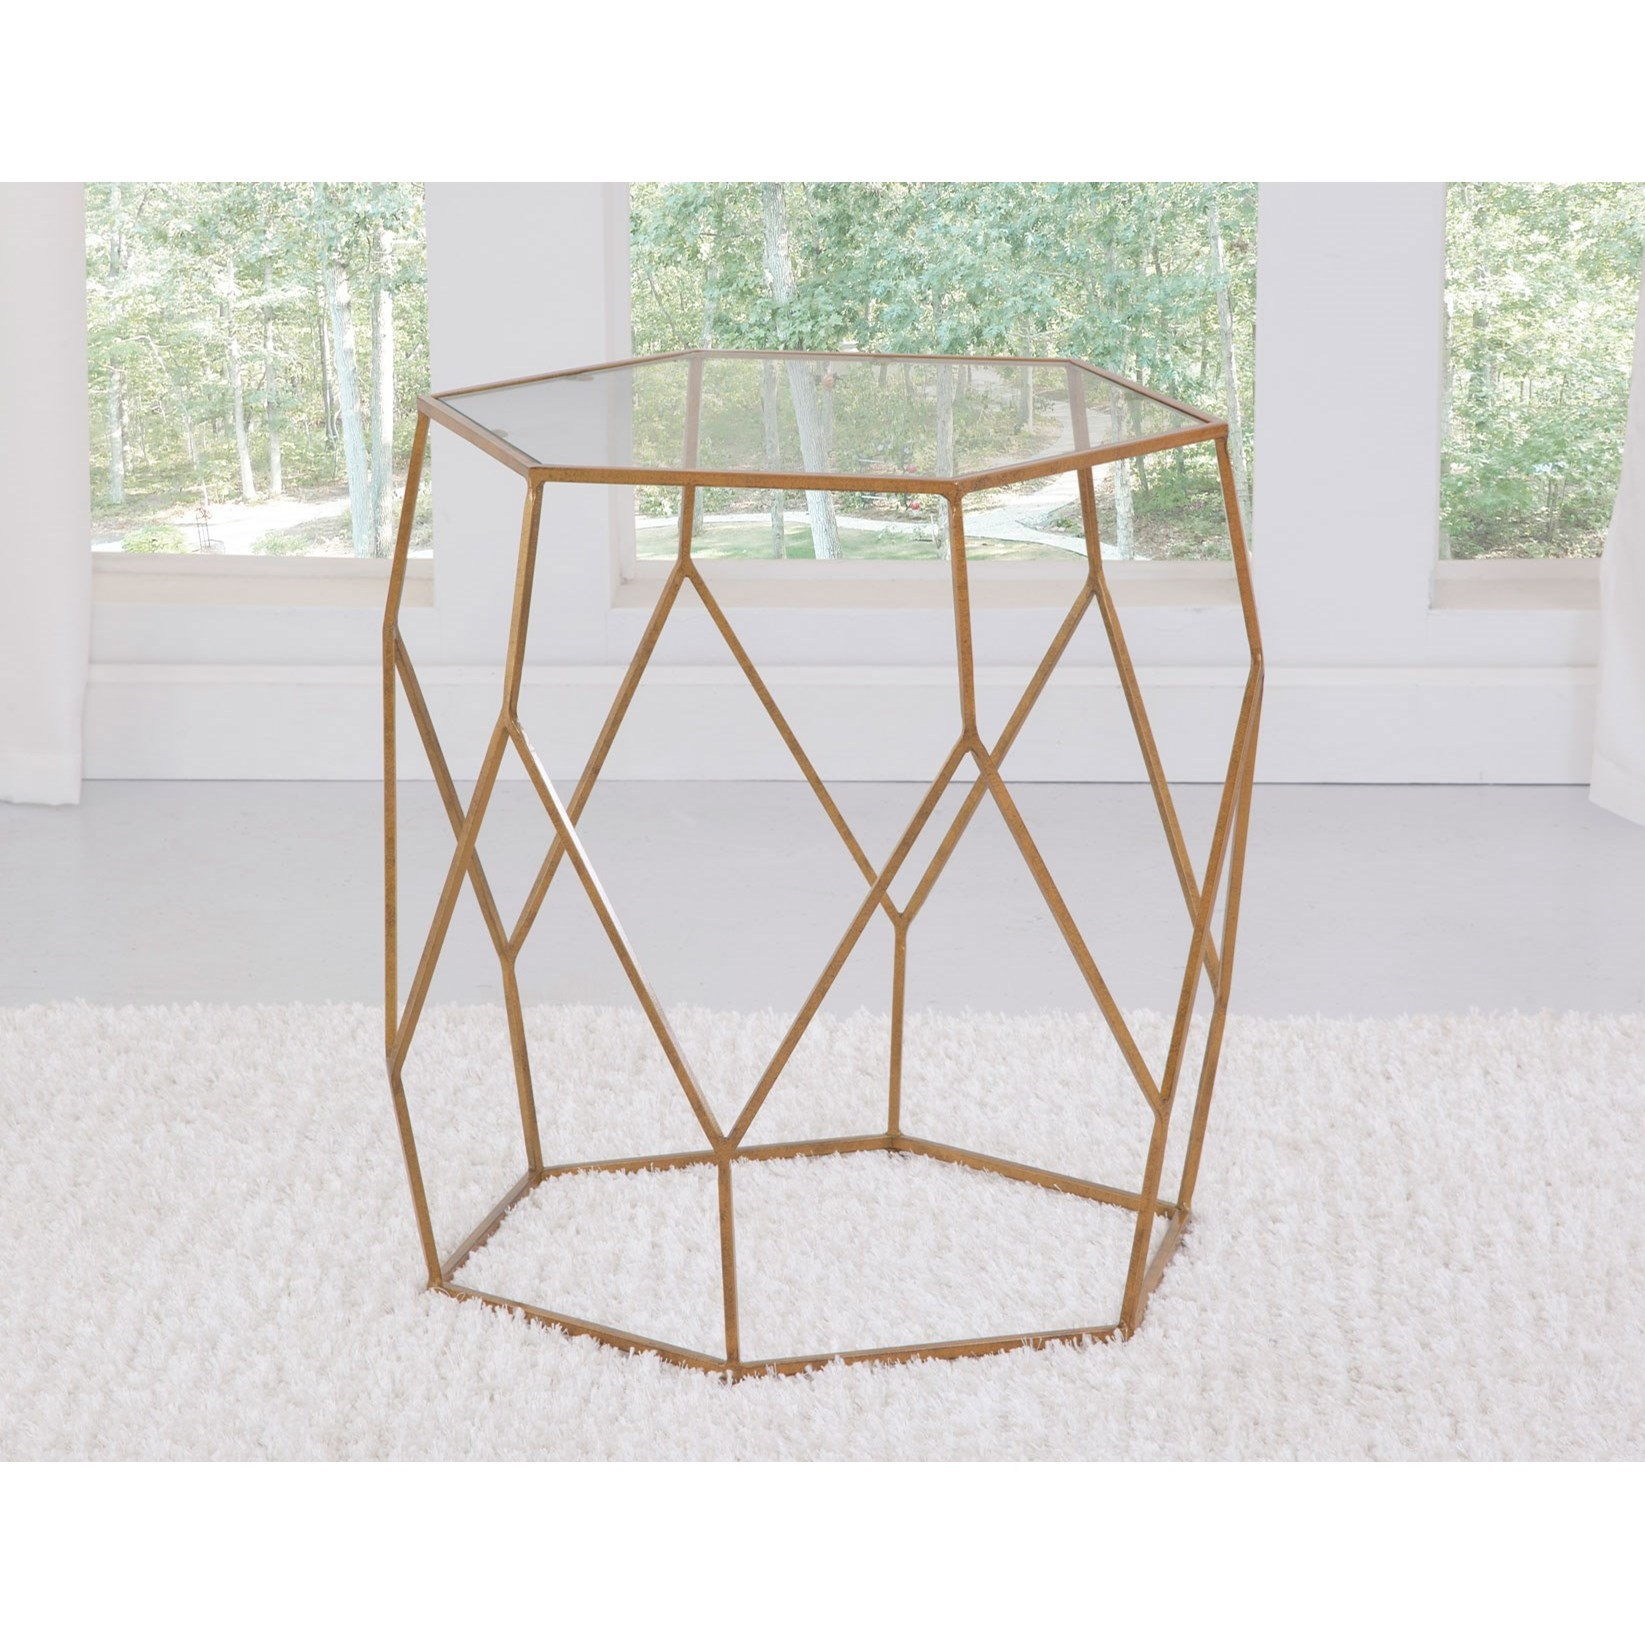 Roxy End Table by Steve Silver at Walker's Furniture